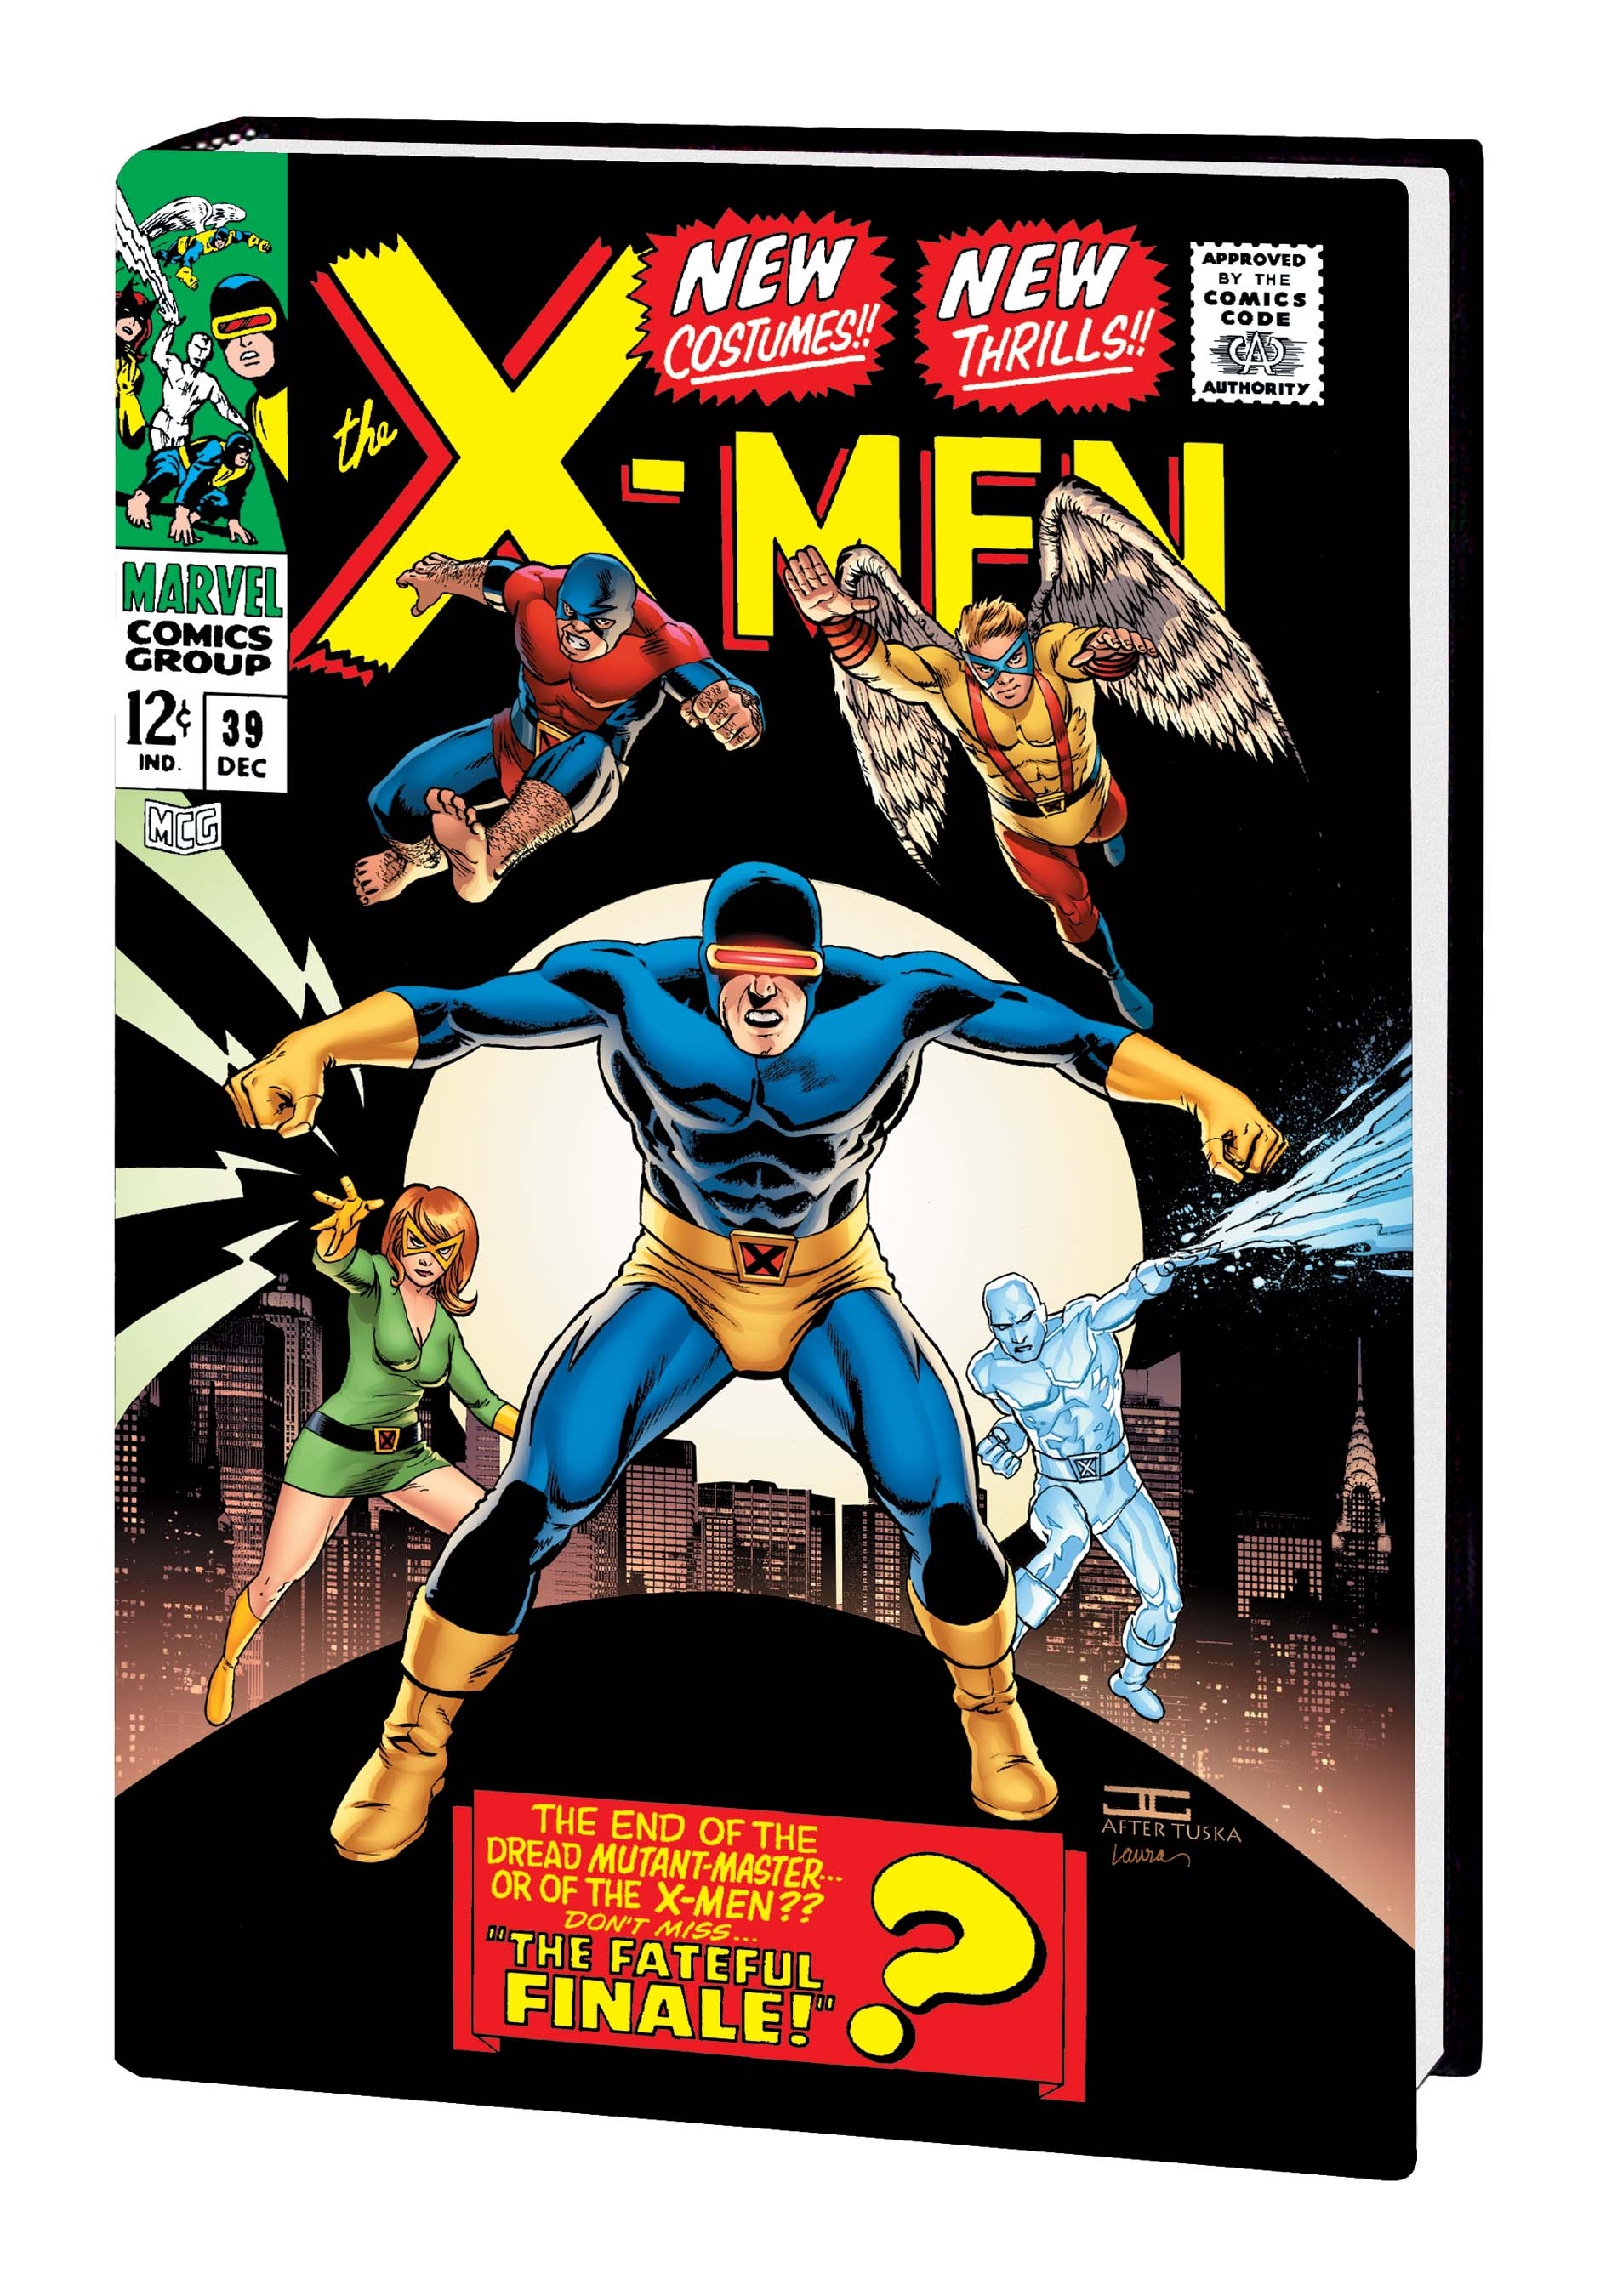 The X-Men Omnibus Vol. 2 (2010) (Cassaday Cover)